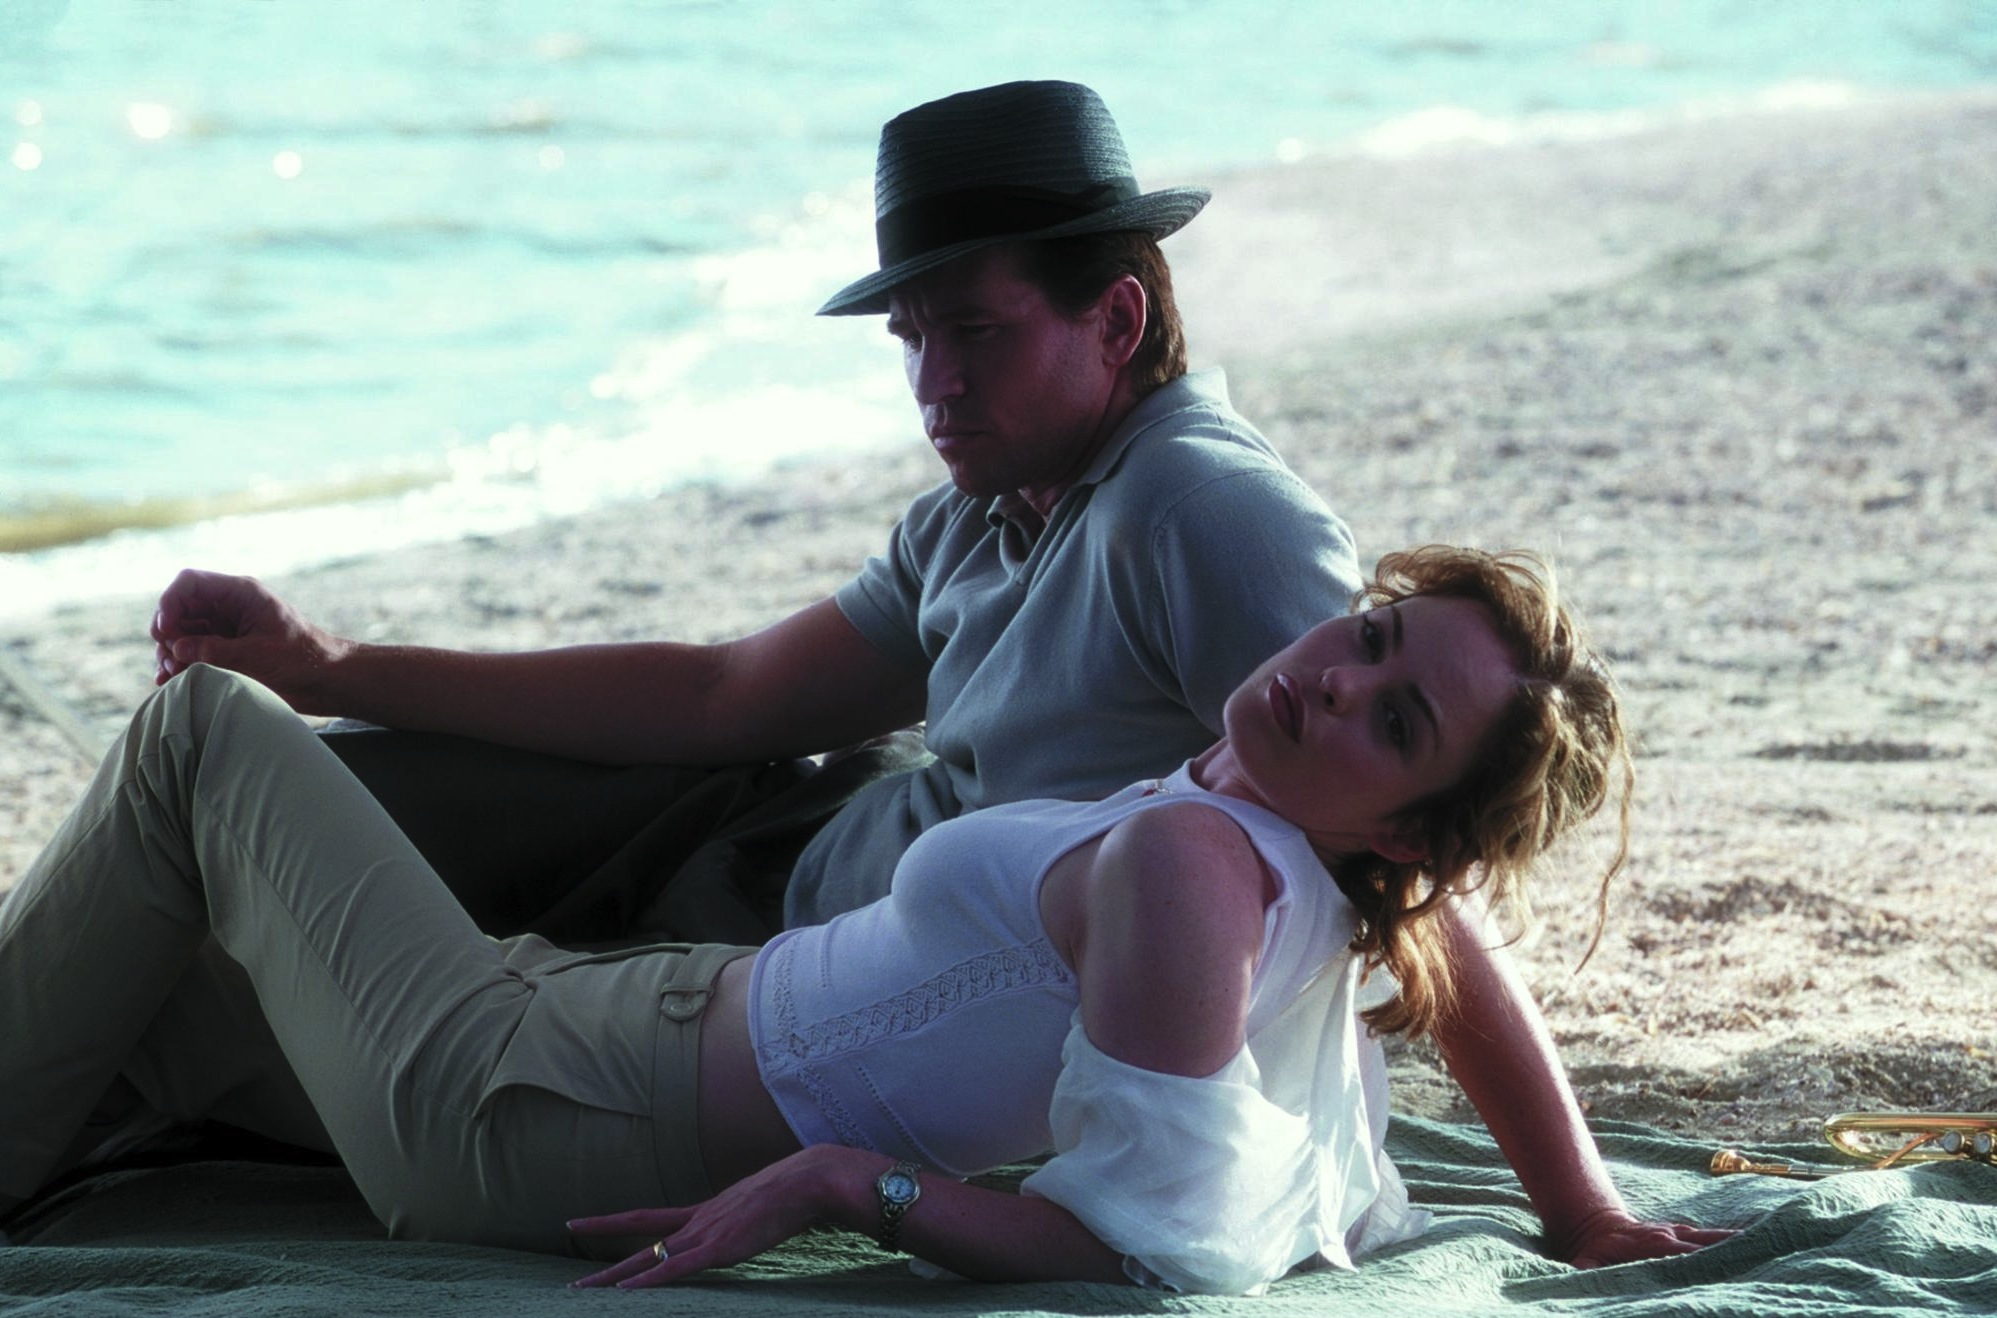 Val Kilmer and Chandra West in The Salton Sea (2002)